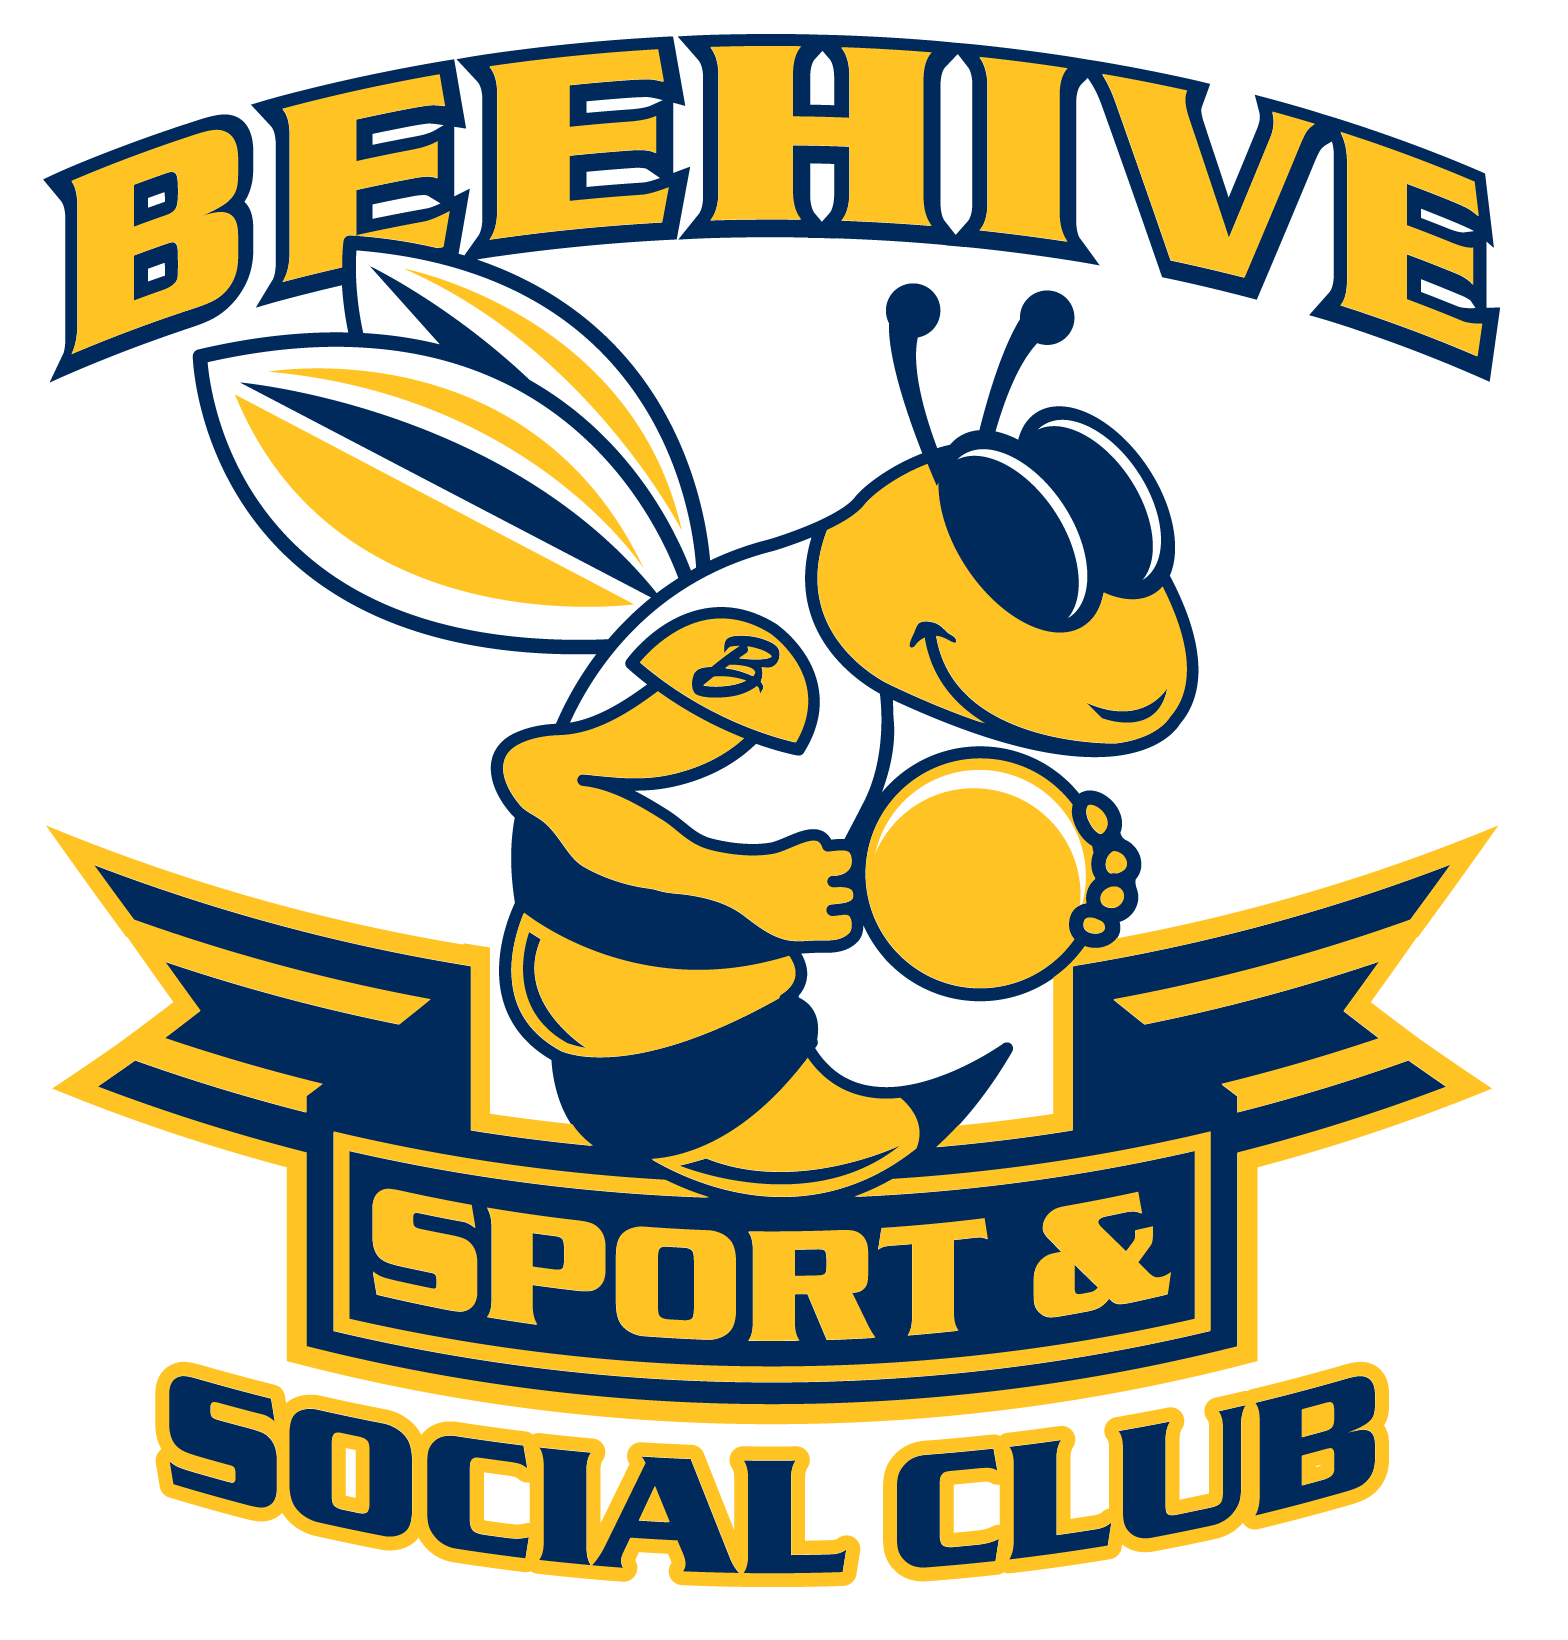 Beehive Sport and Social Club